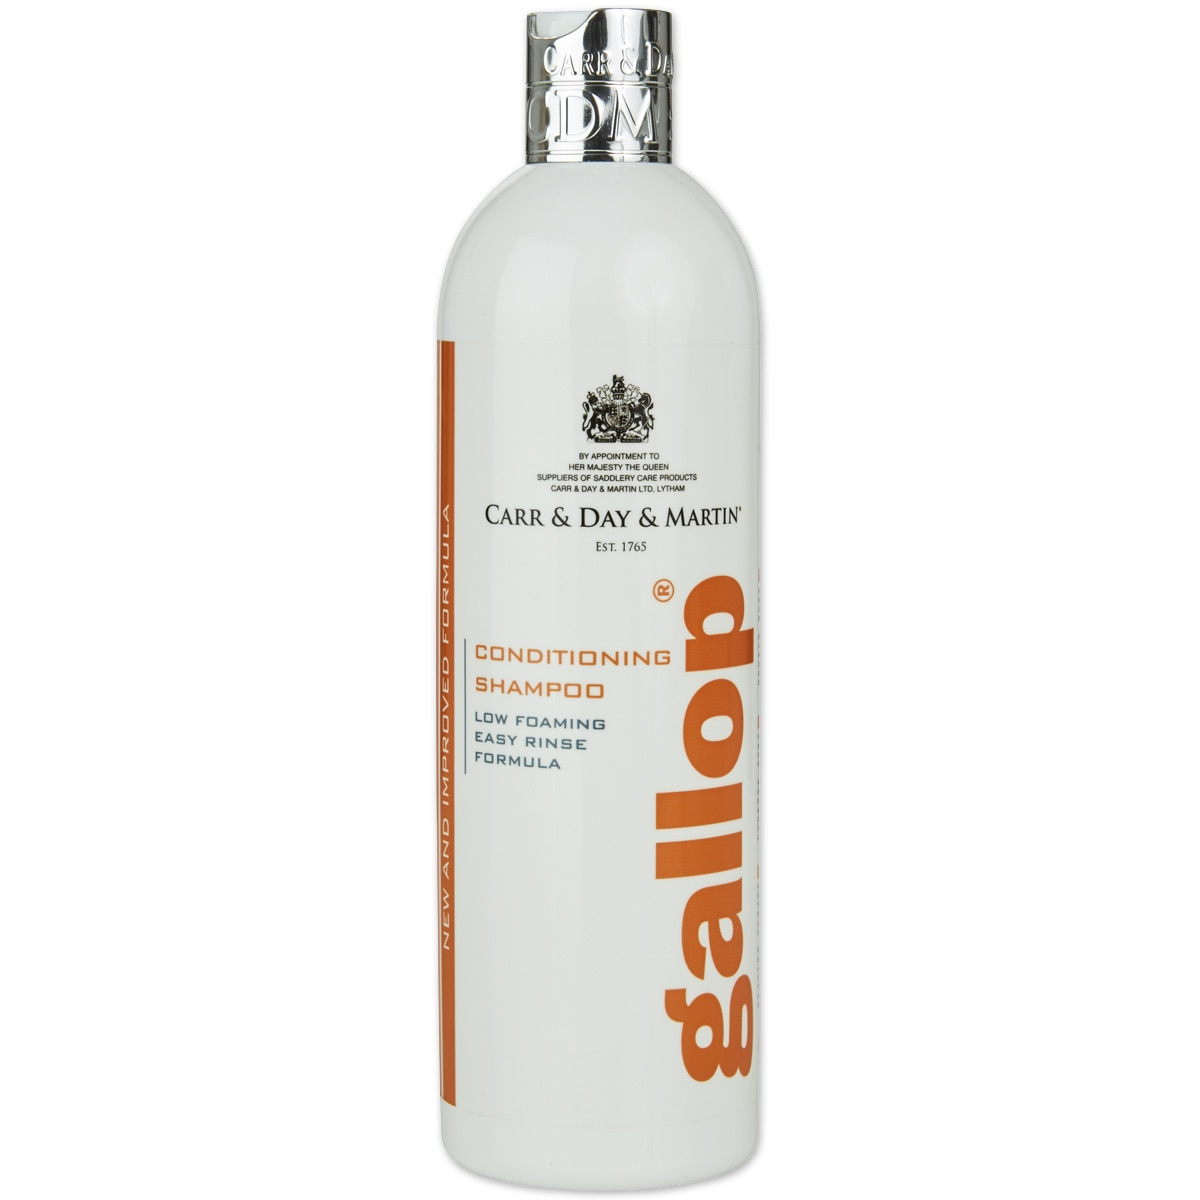 Carr & Day & Martin Gallop Conditioning Shampoo®